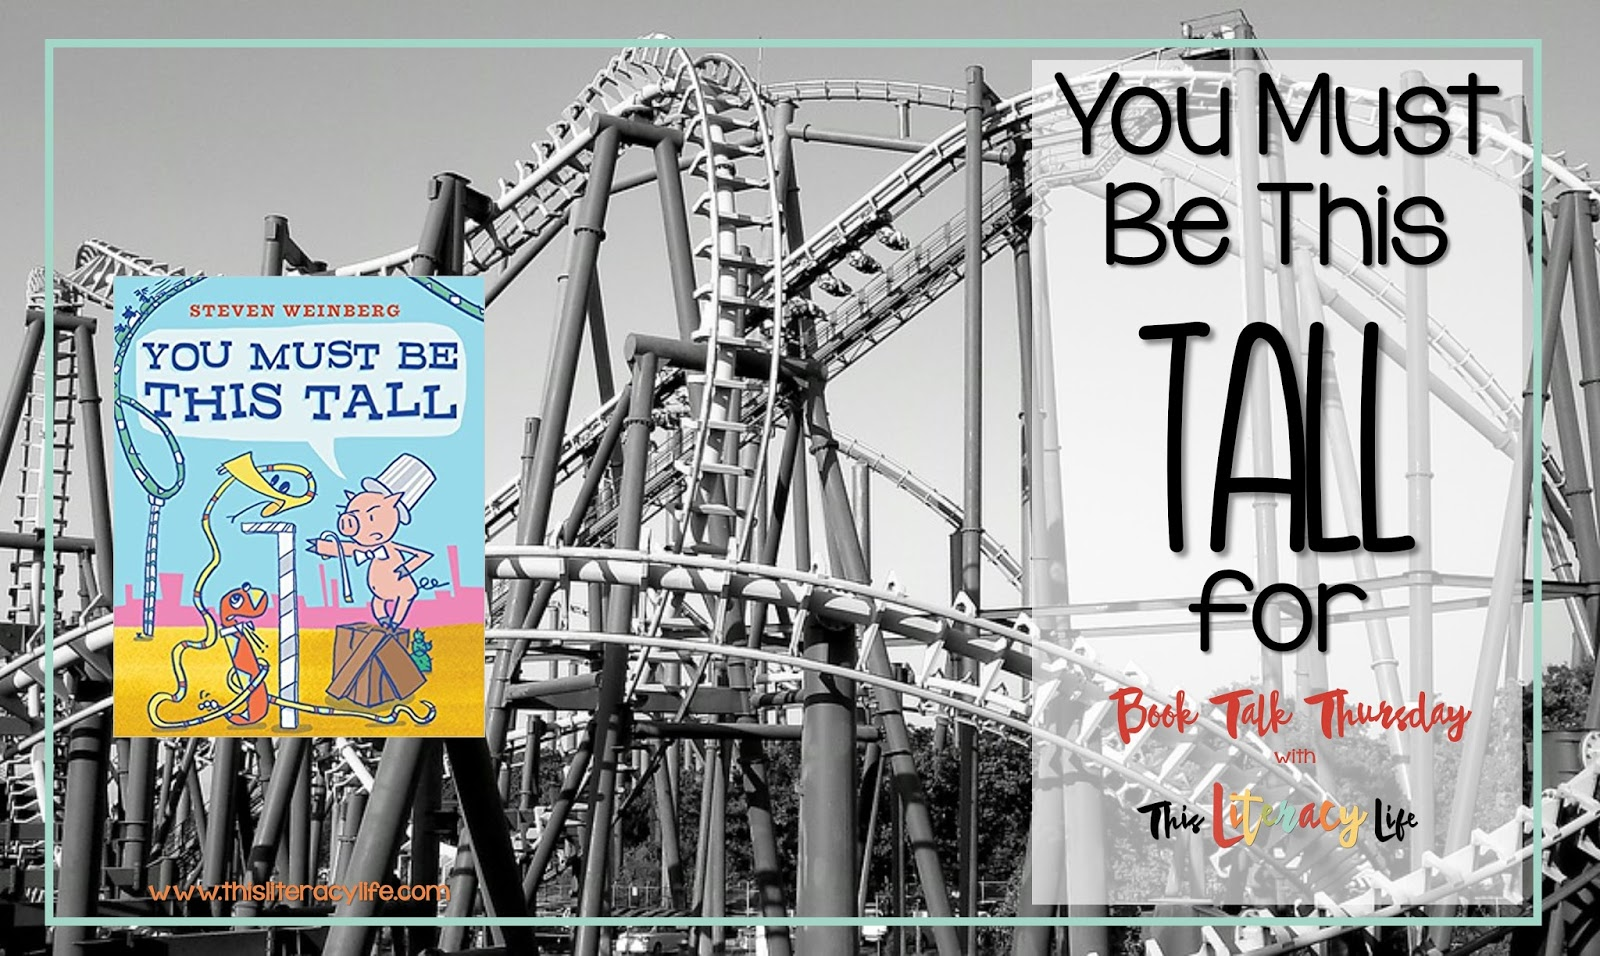 One problem and many solutions for Frank and Harold. What will they do to ride The Rattler at the fair?